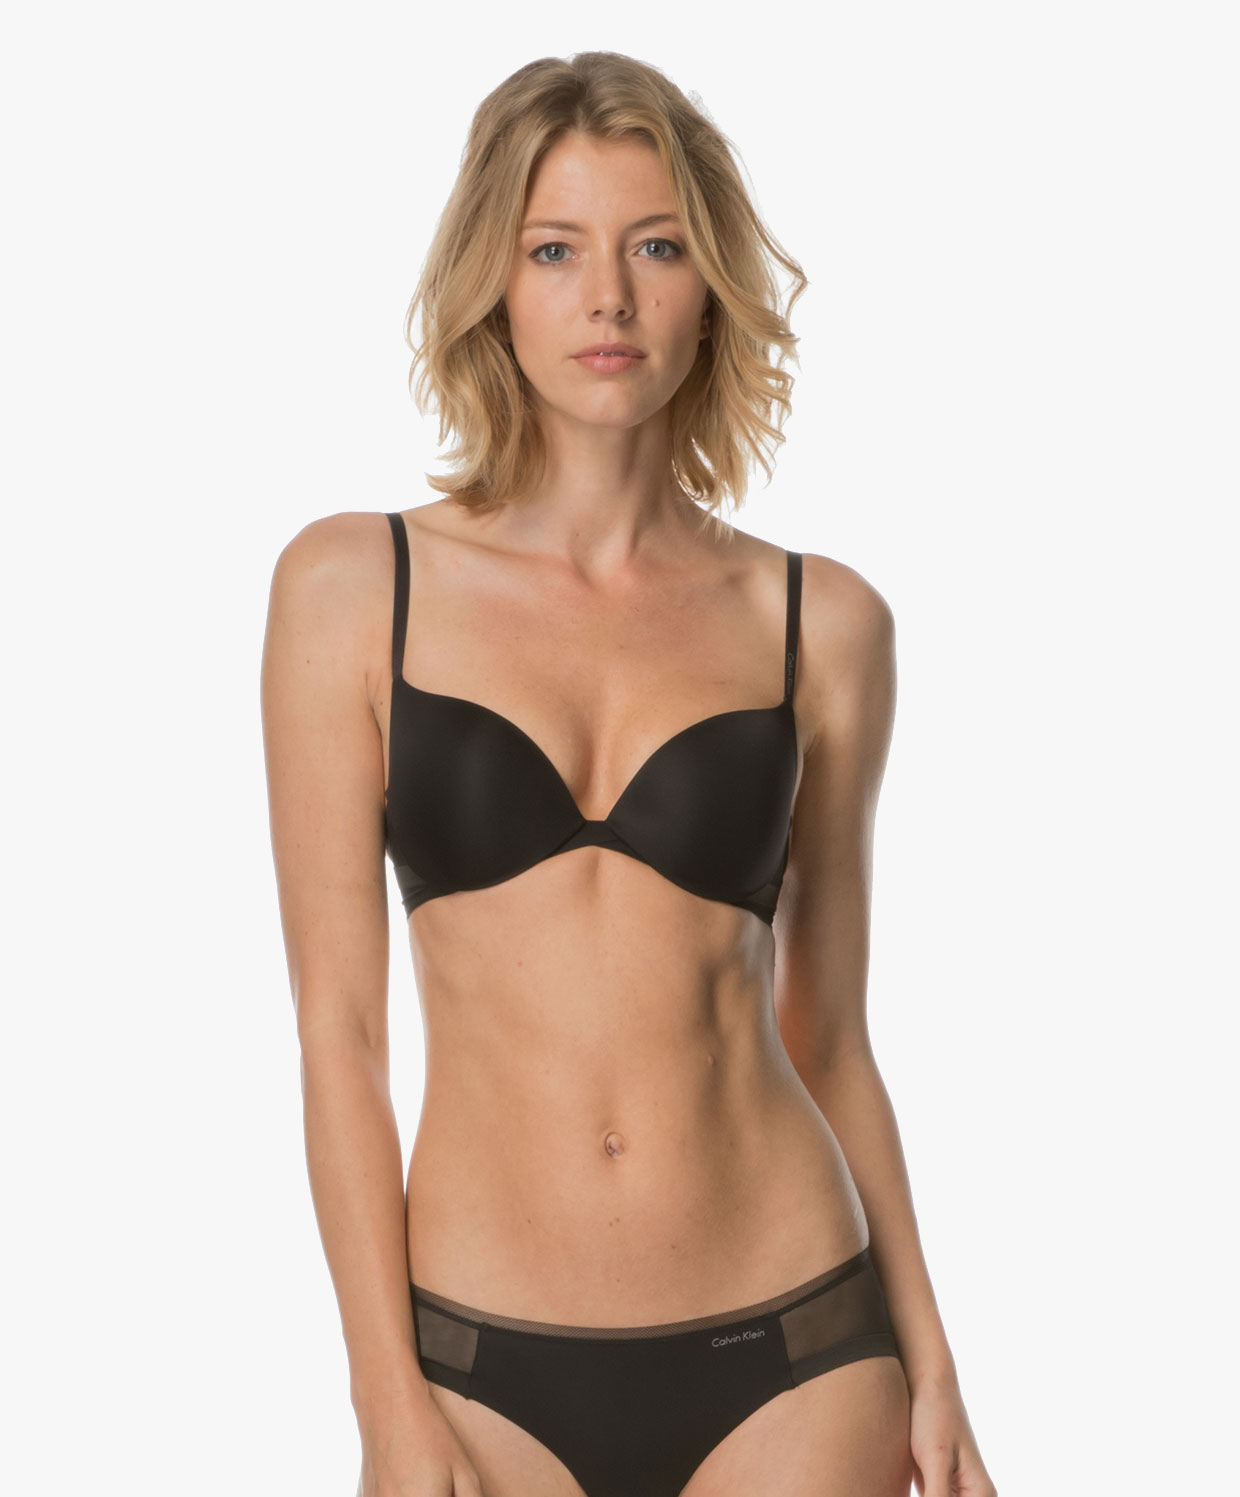 Calvin Klein Sculpted Plunge Push-up Bra - Black